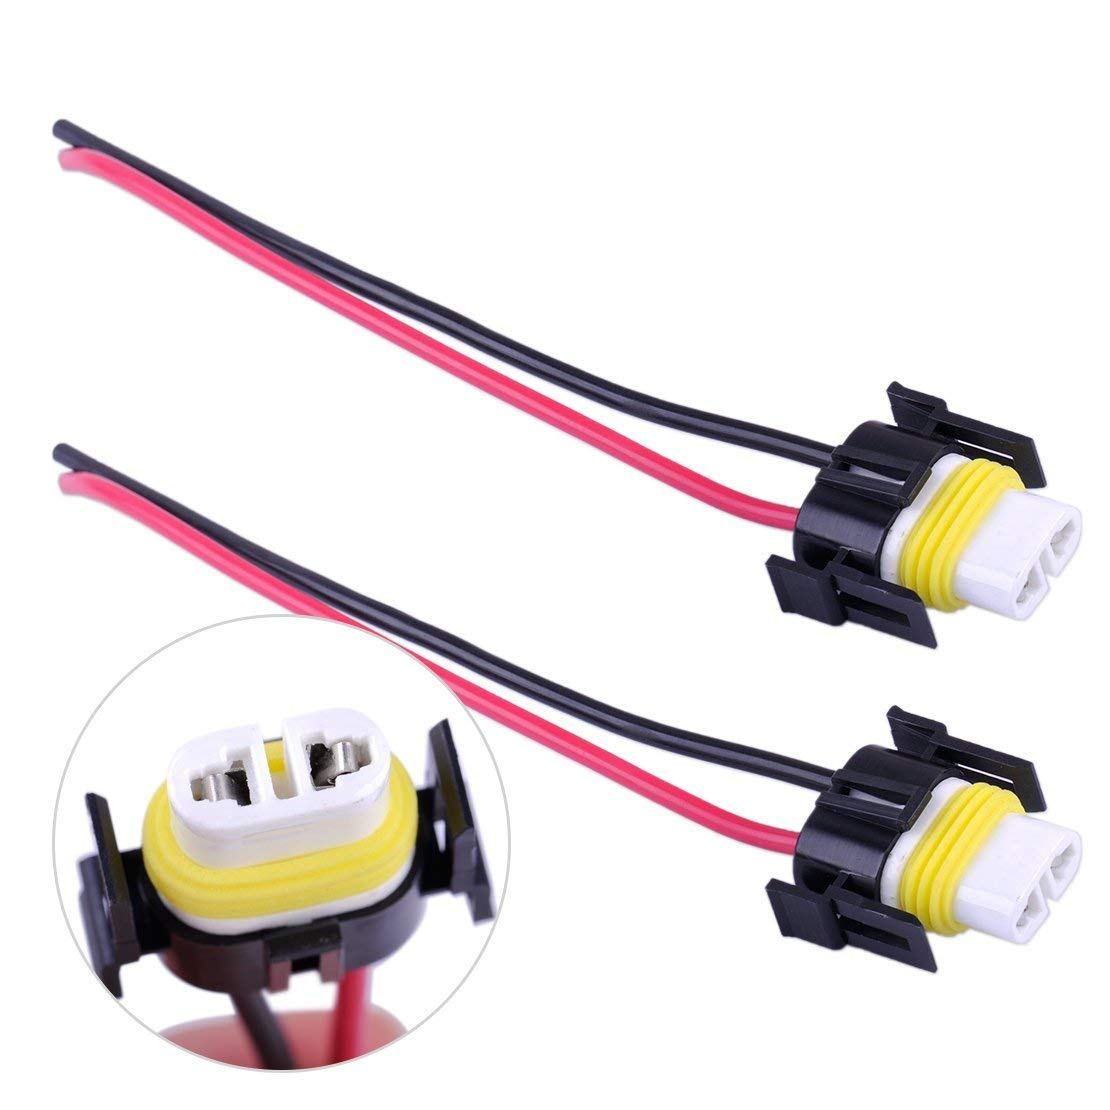 hight resolution of vehicle parts accessories car parts 2 dc 12v h11 headlight bulb male wire harness